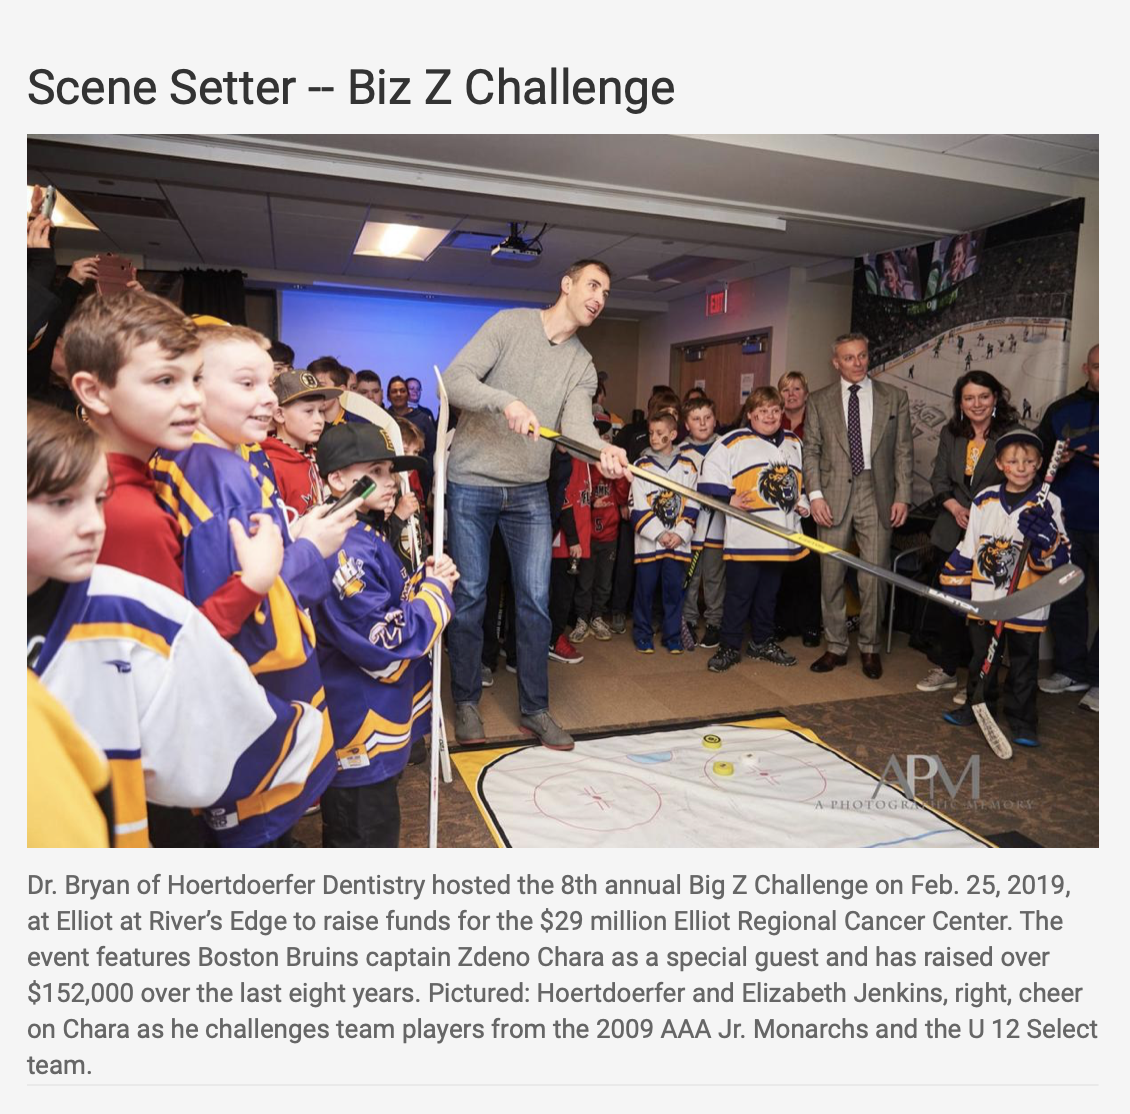 Union leader scene setters big z 3-12-19.png